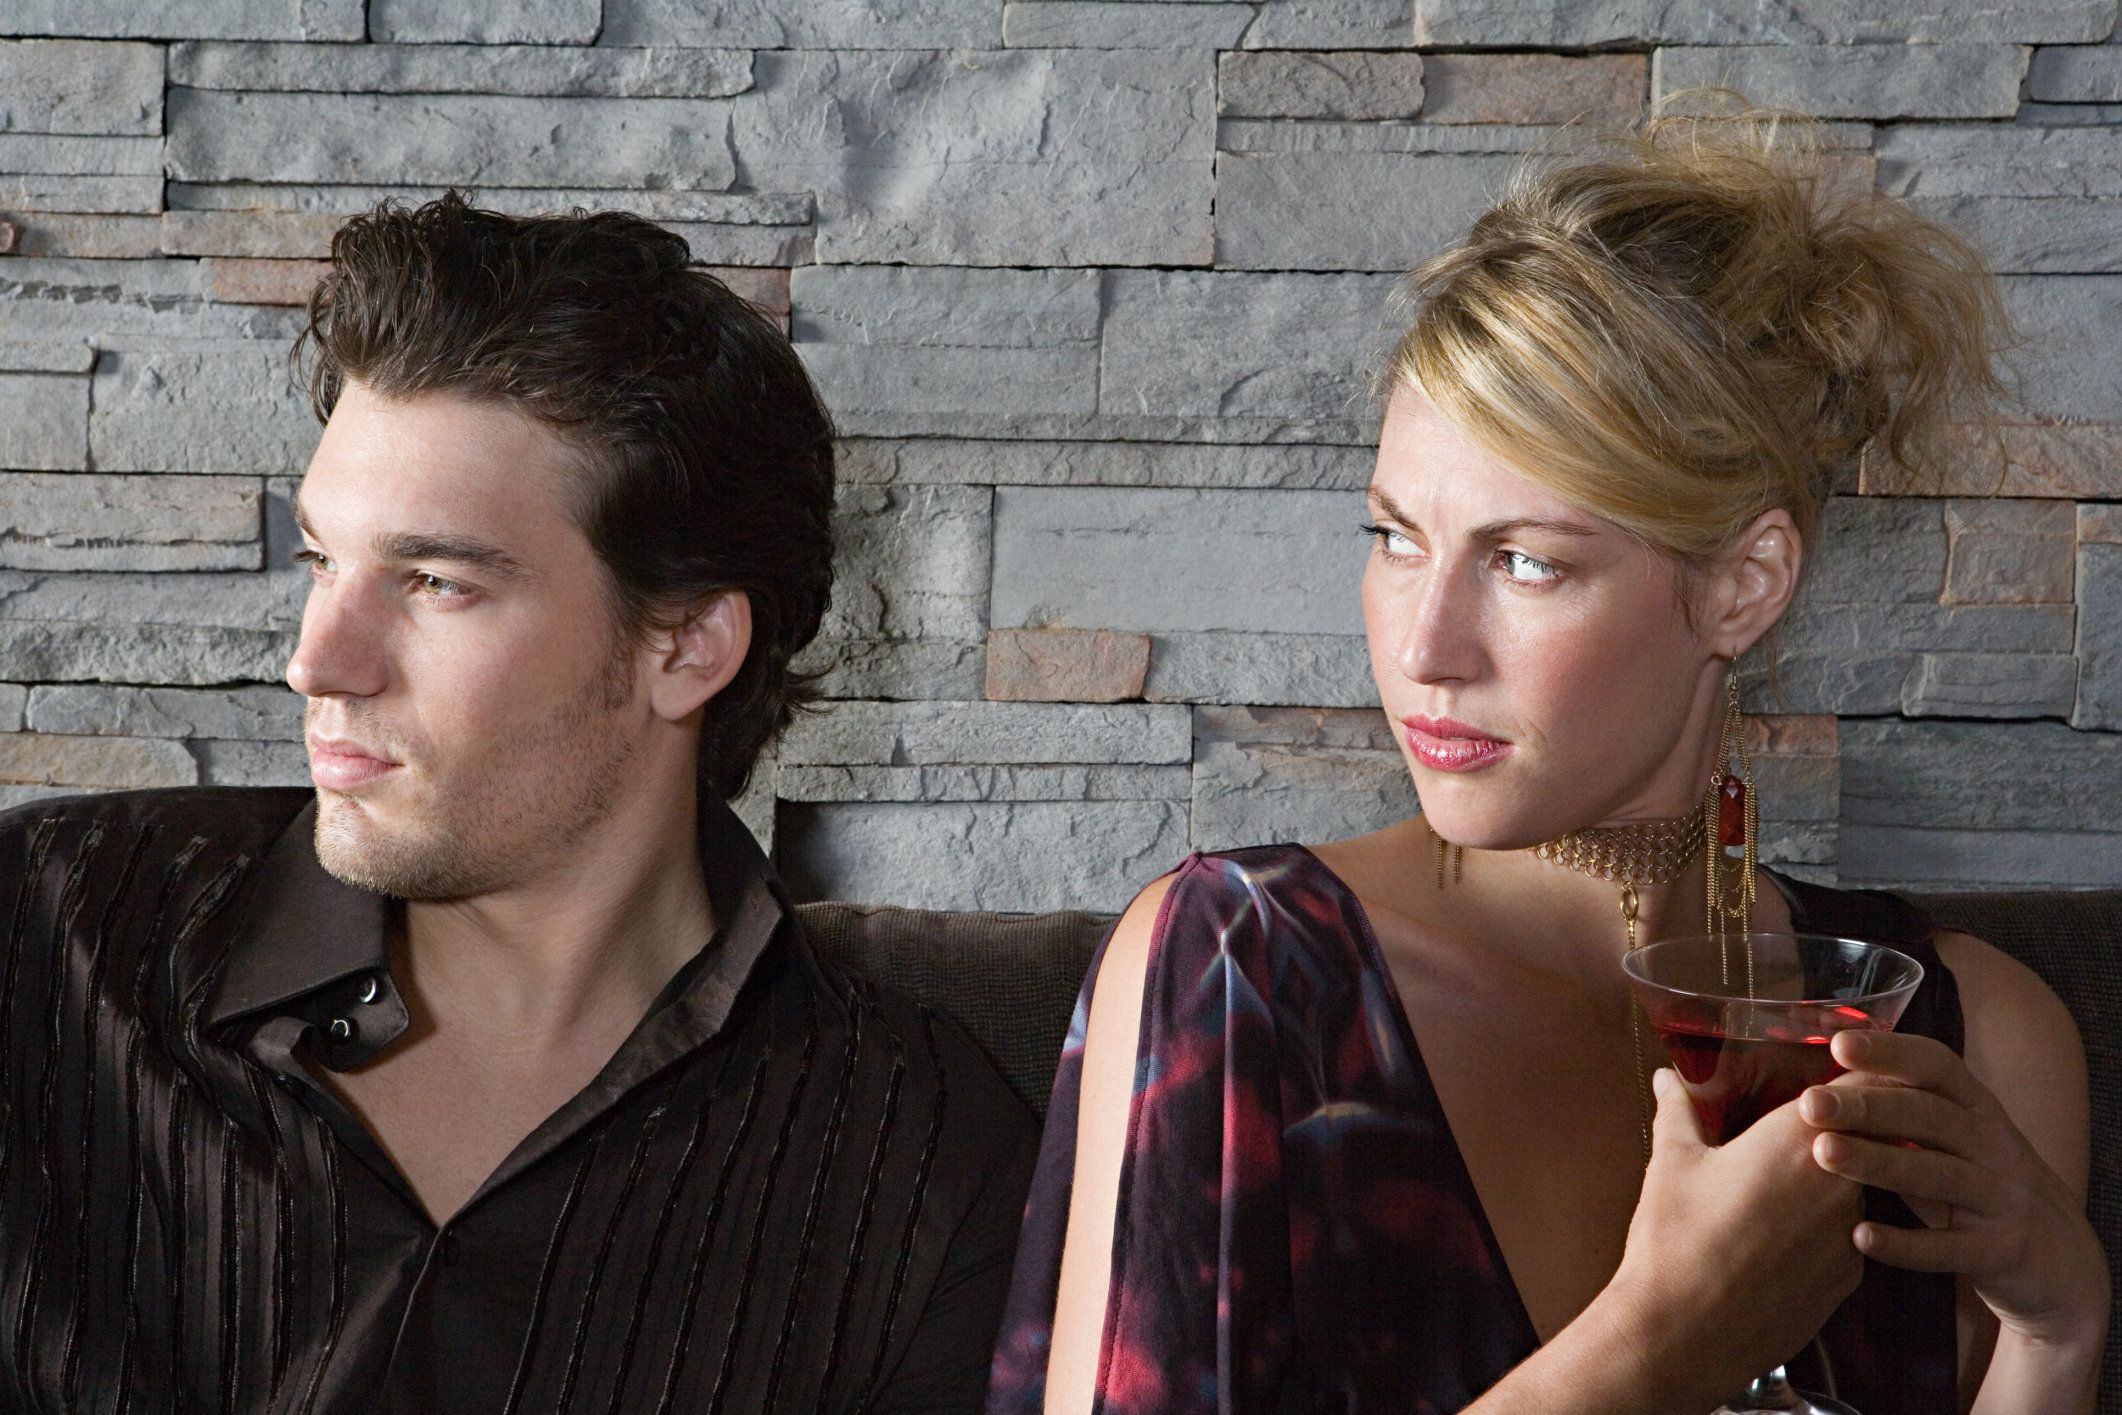 Woman frowning at boyfriend